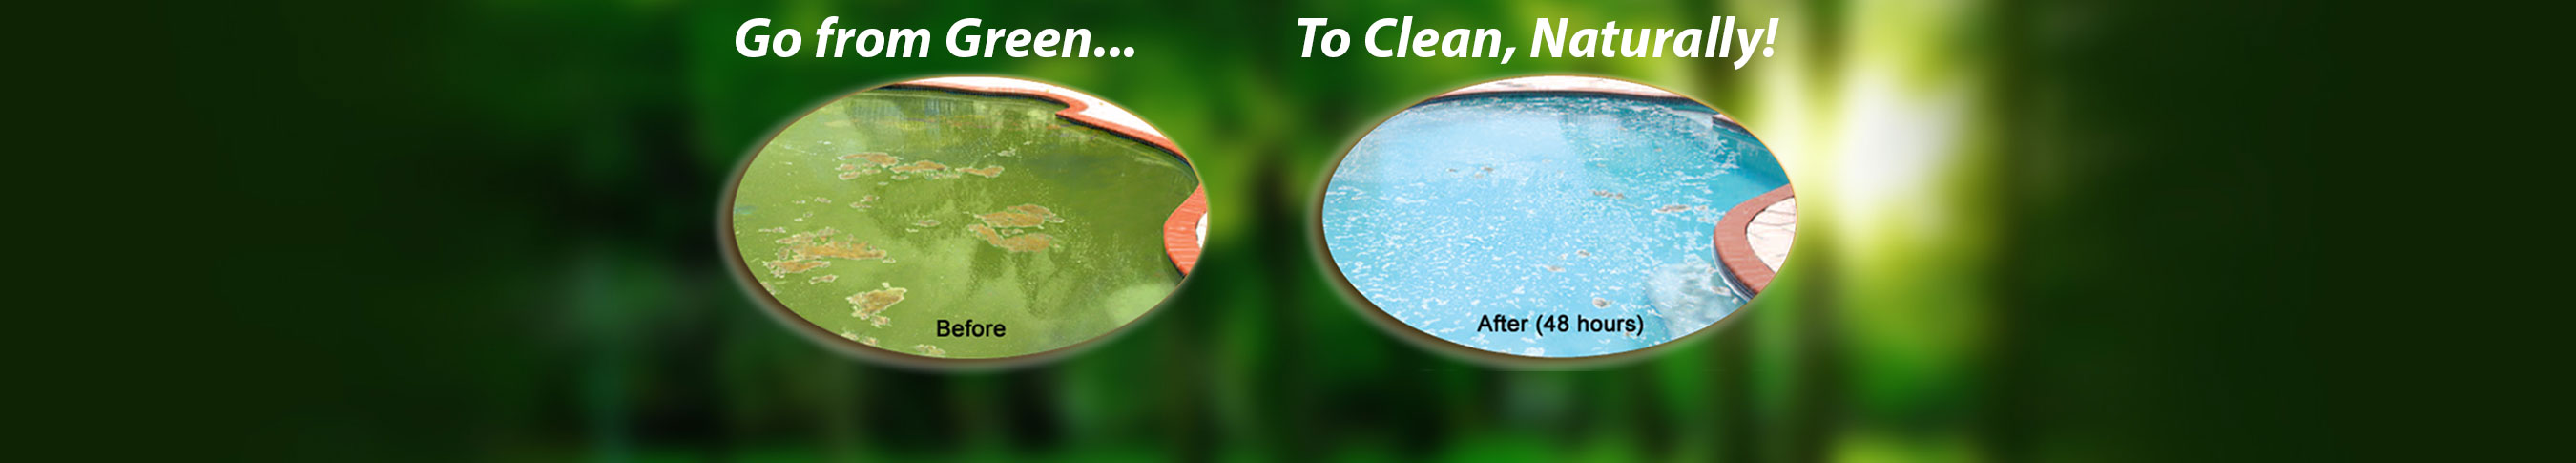 green-to-clean-2